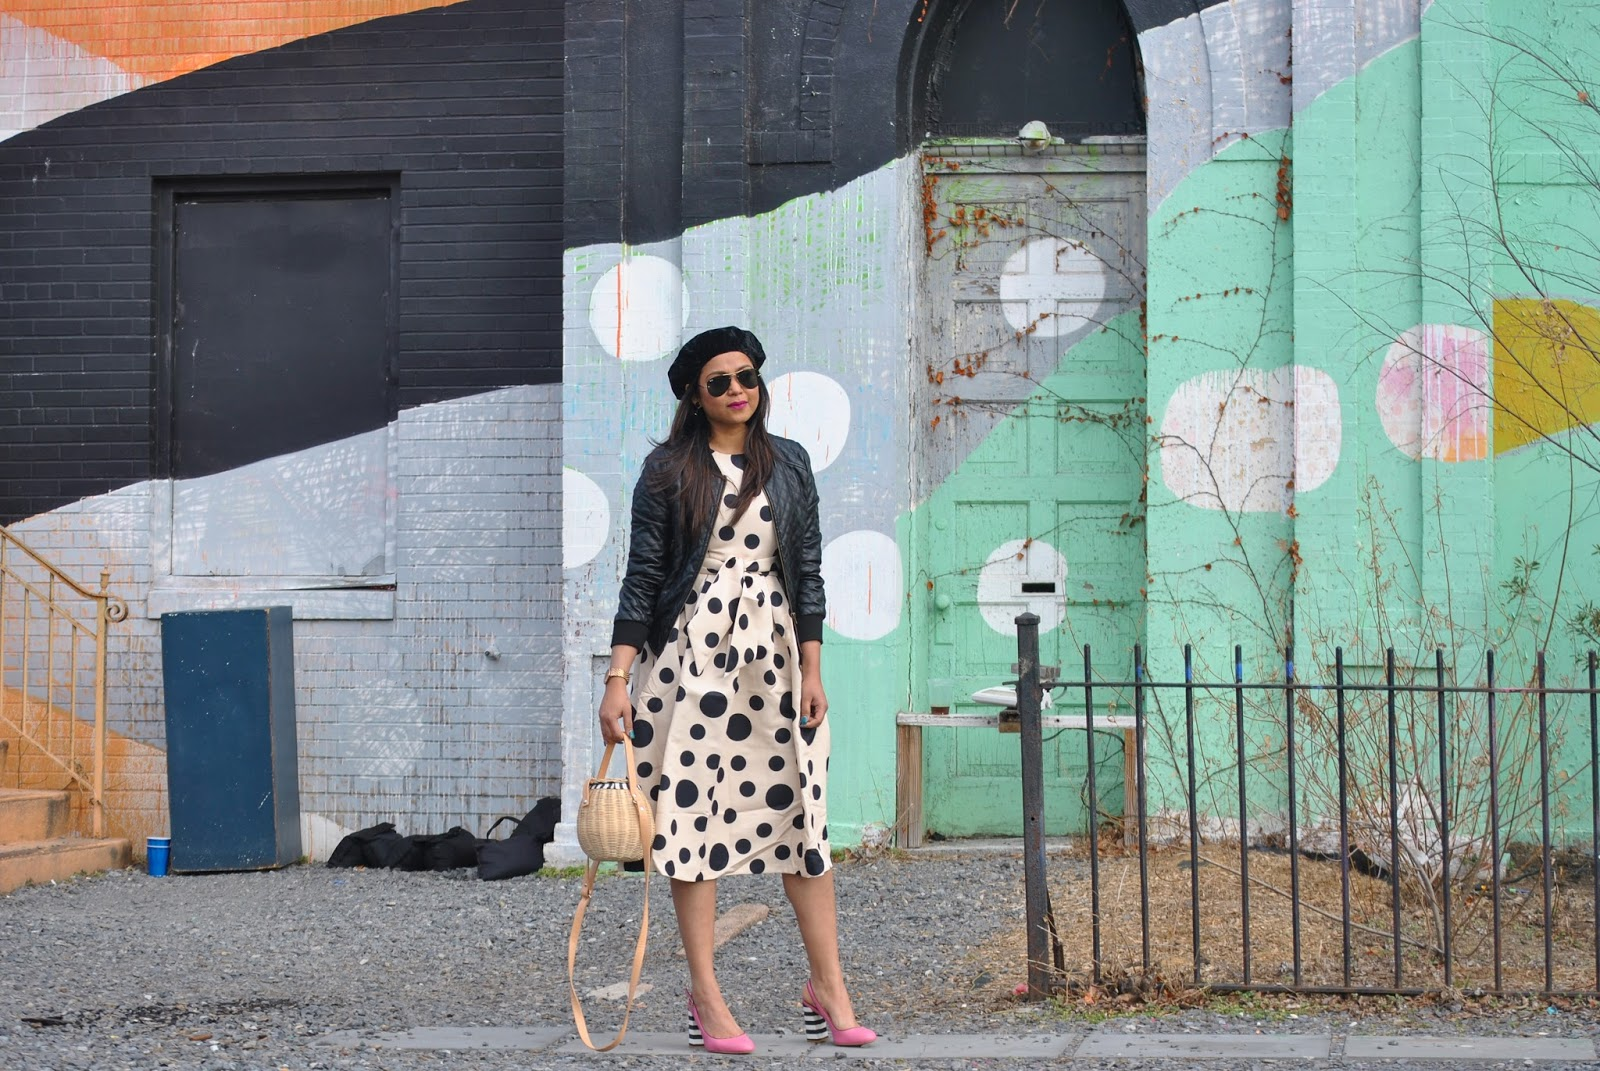 how to wear polka dots in winter, print on print, textured, fashion, street style, leather jacket, pink stripe heels, get out of a fashion rut, street style, beret style, myriad musings, Dainty Jewells polka dot midi dress